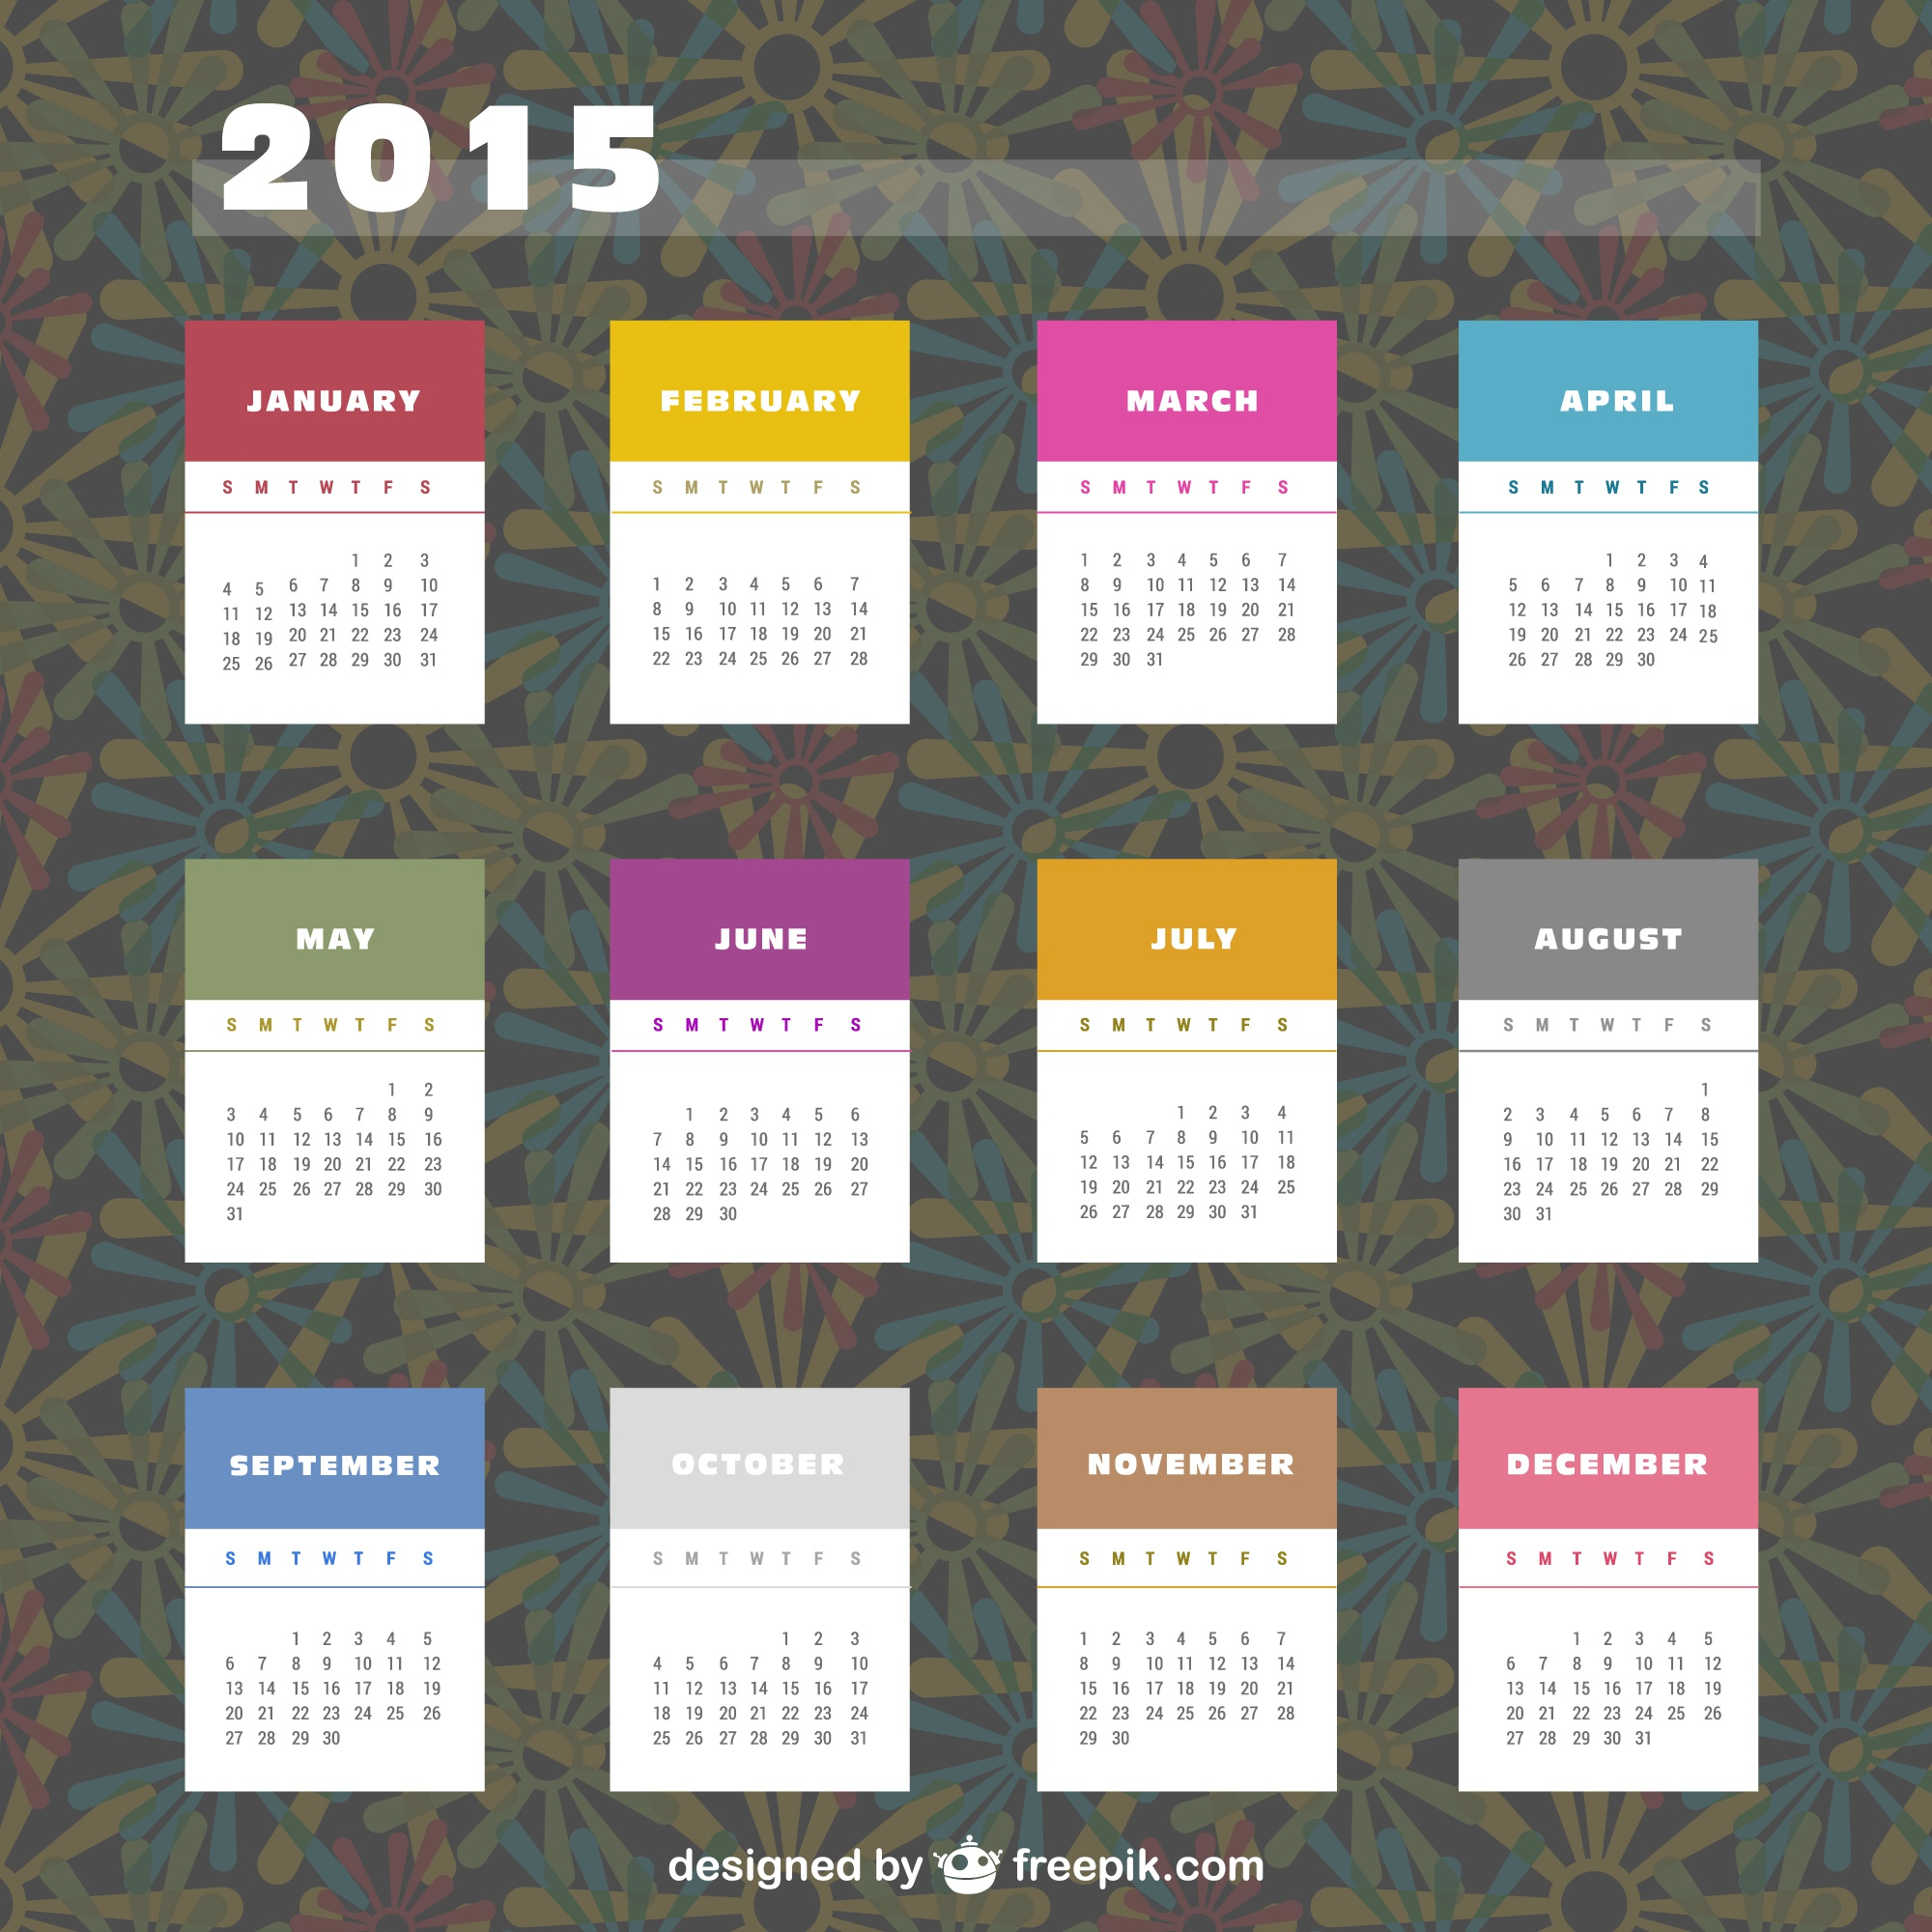 2015 Calendar with colorful labels